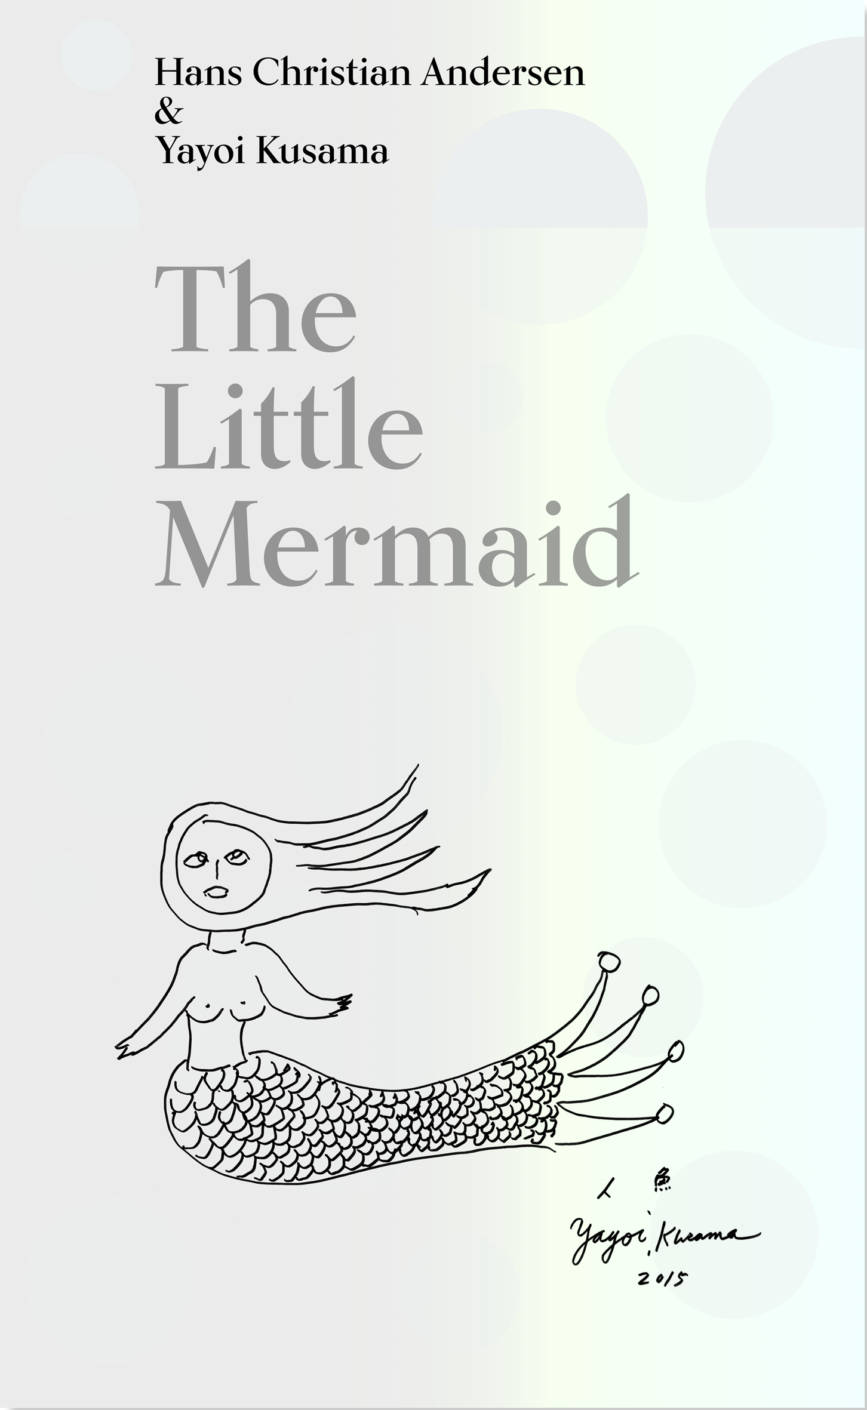 The Little Mermaid by Hans Christian Andersen & Yayoi Kusama: A Fairy Tale of Infinity and Love Fore